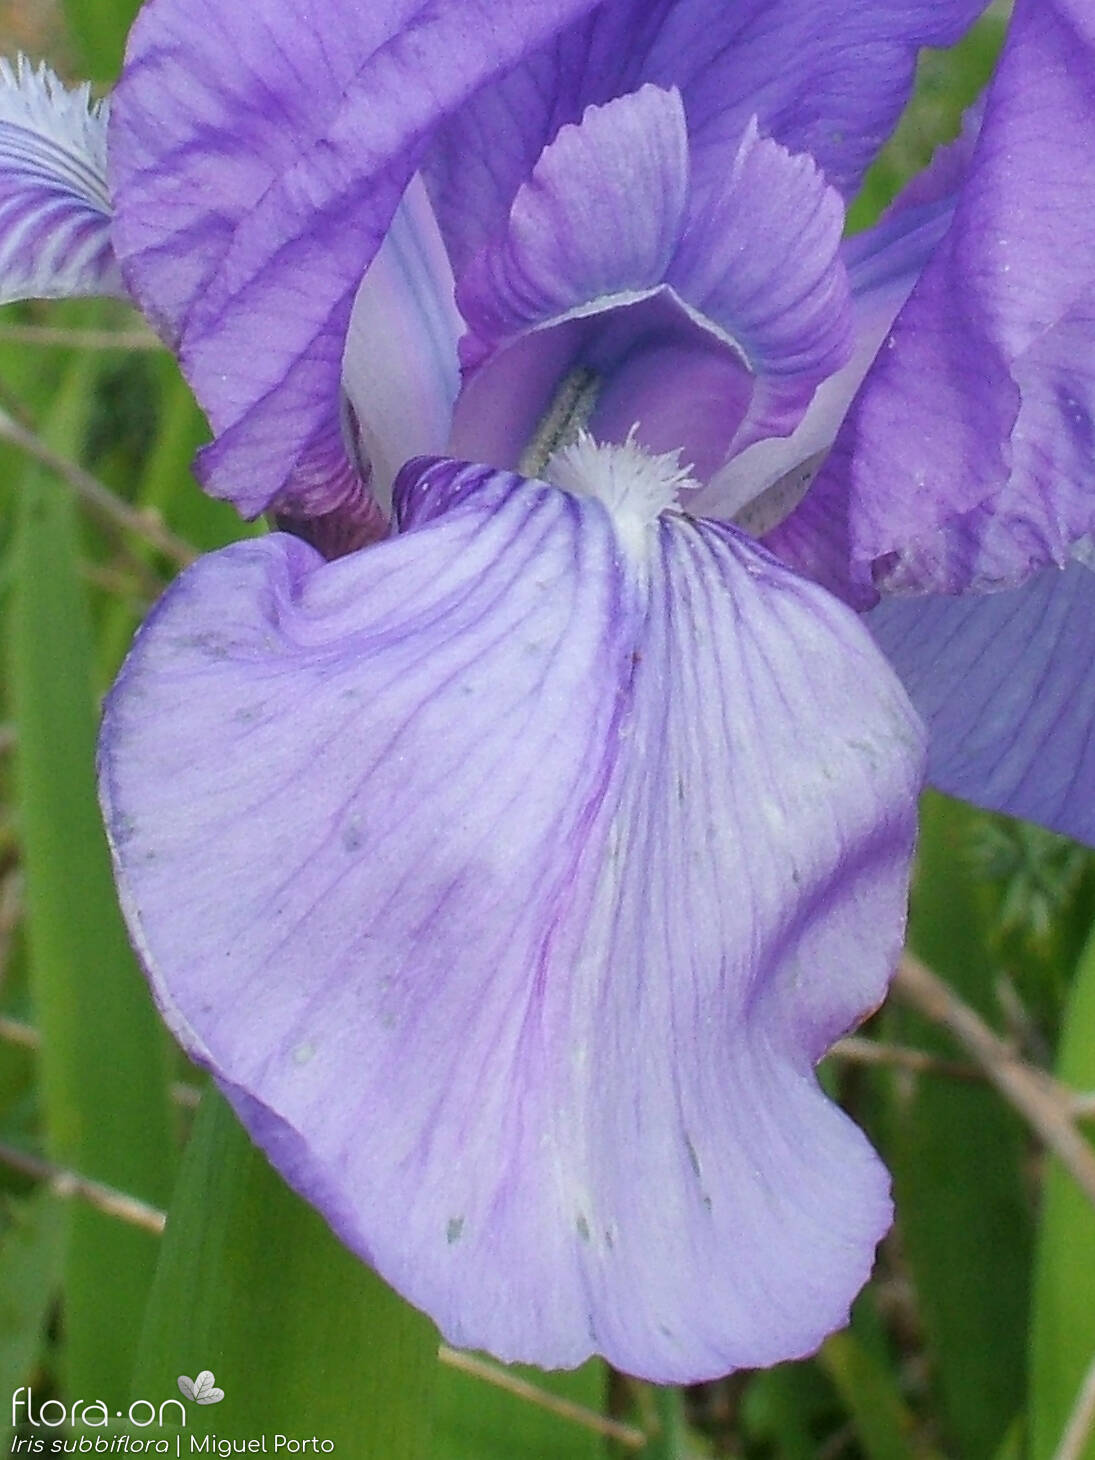 Iris subbiflora - Flor (close-up) | Miguel Porto; CC BY-NC 4.0